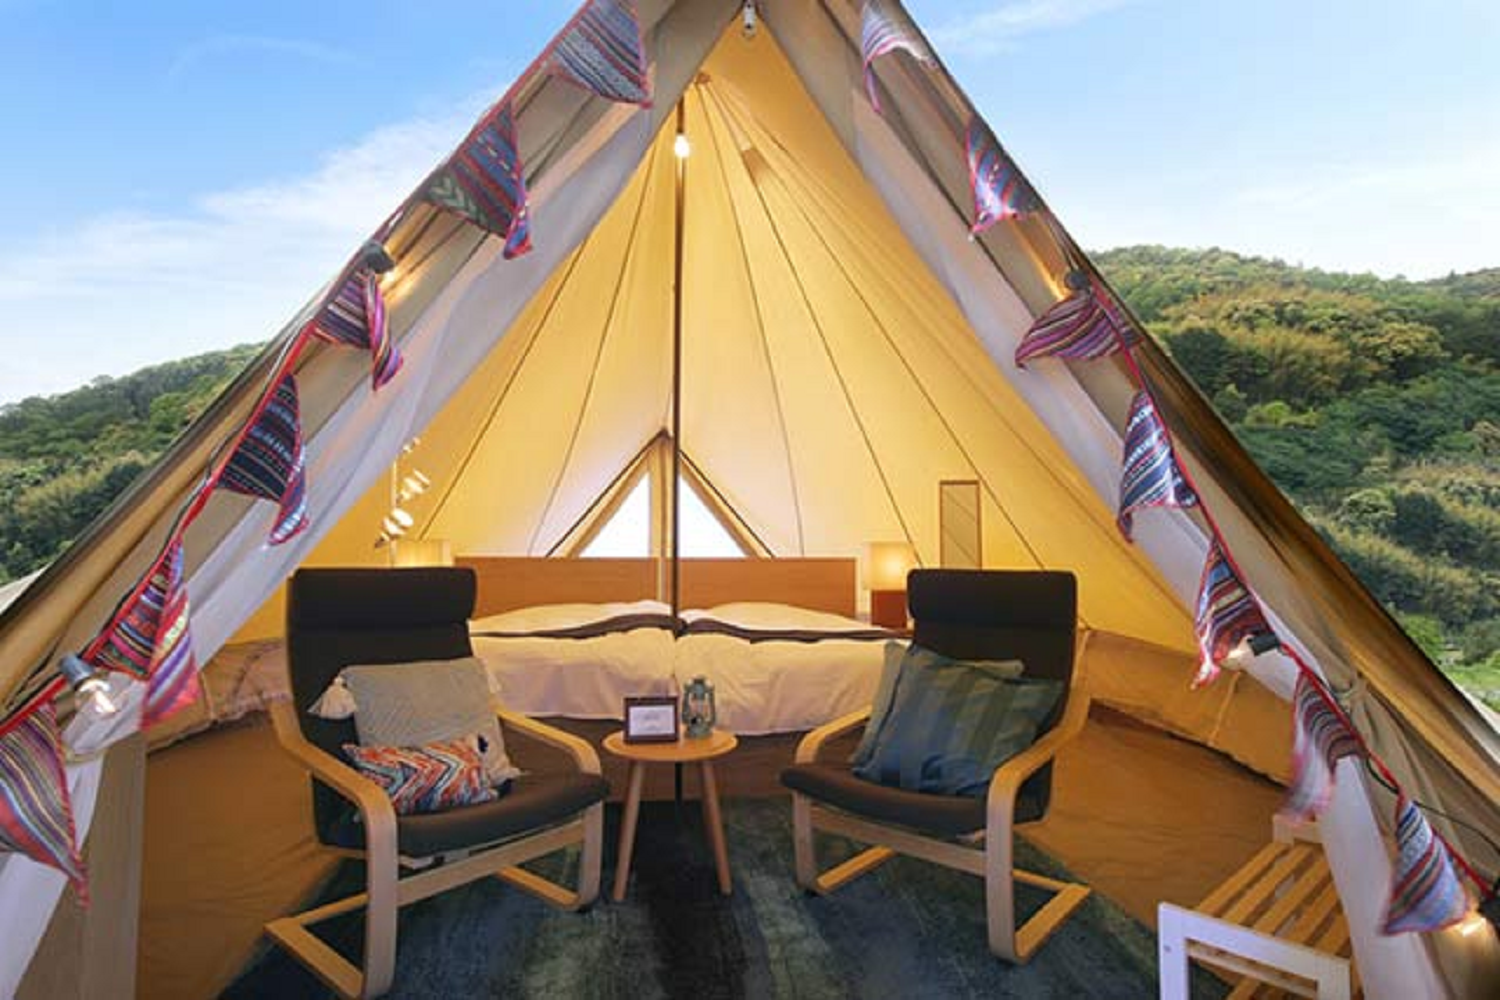 Tired of being stuck indoors? Research reveals recent camping trends in Japan